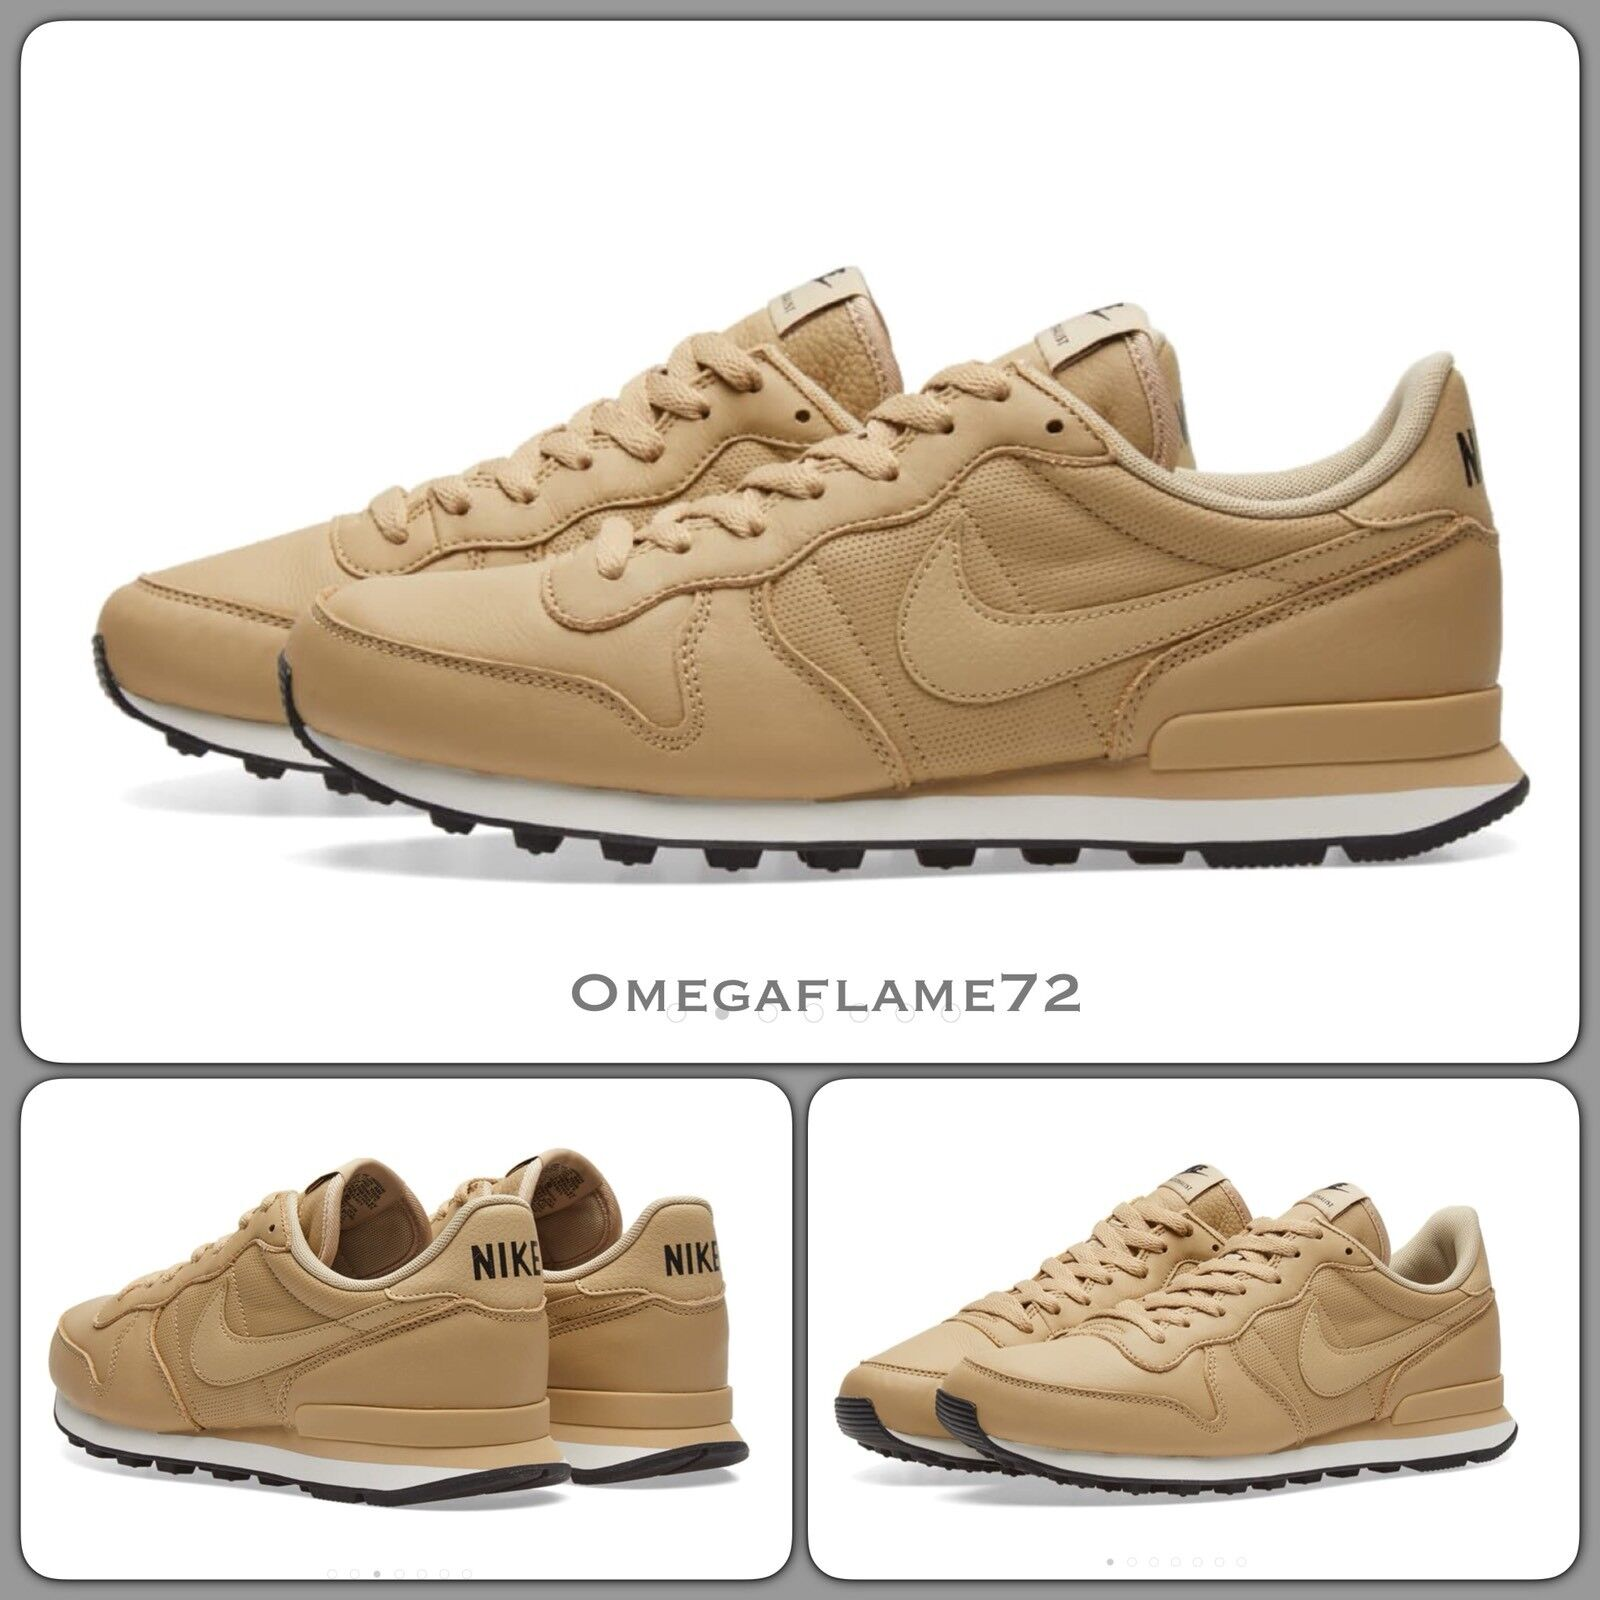 Nike Internationalist, 631754-202 Leather US 11 Mushroom vachetta Leather 631754-202 7d4837